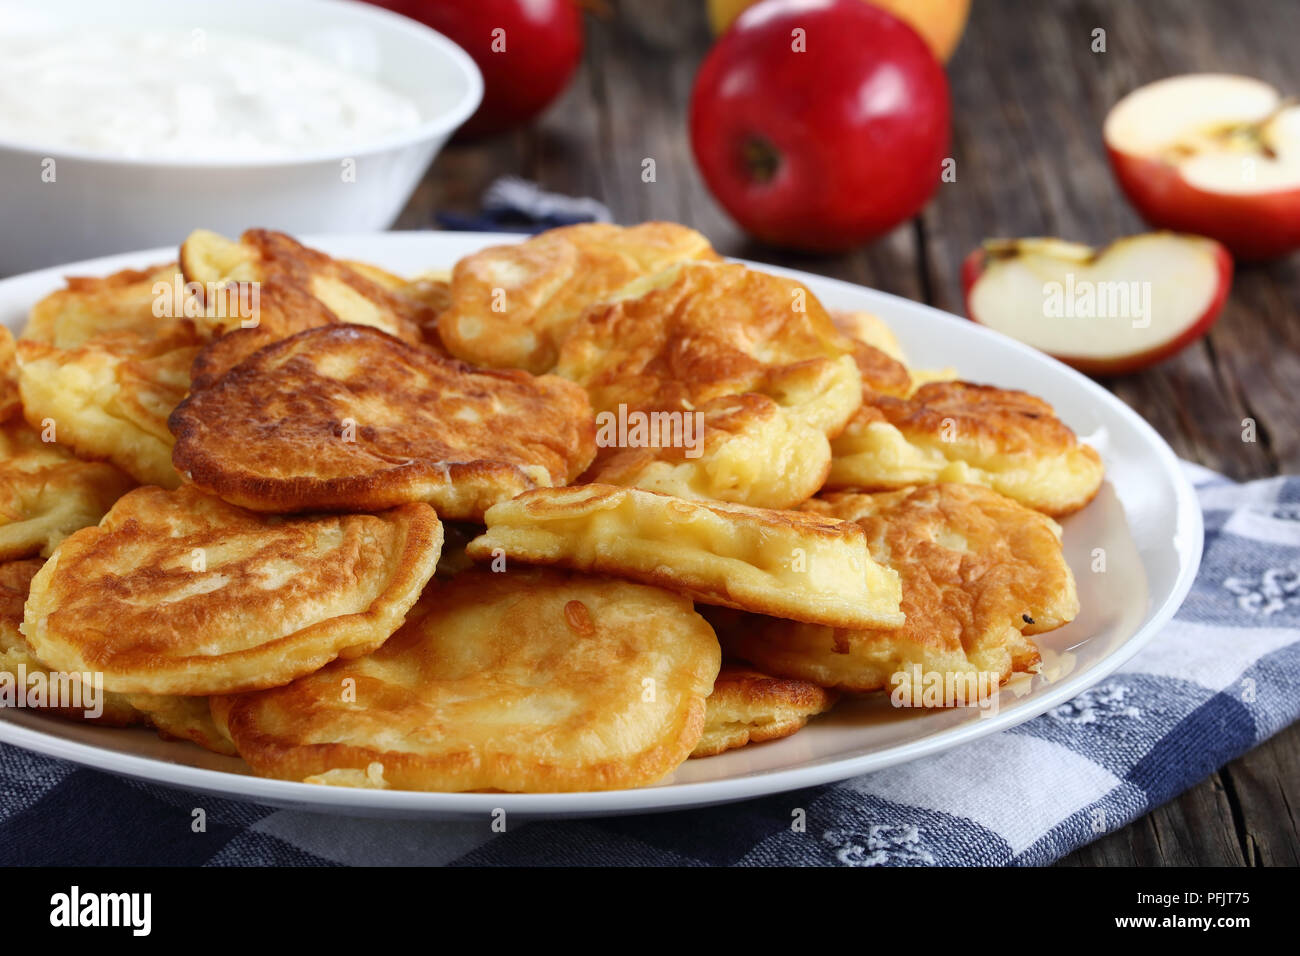 tasty fluffy Pancakes loaded with juicy pieces of apple, on white plate on old dark wooden table with sour cream in bowl and apples at background, sid - Stock Image